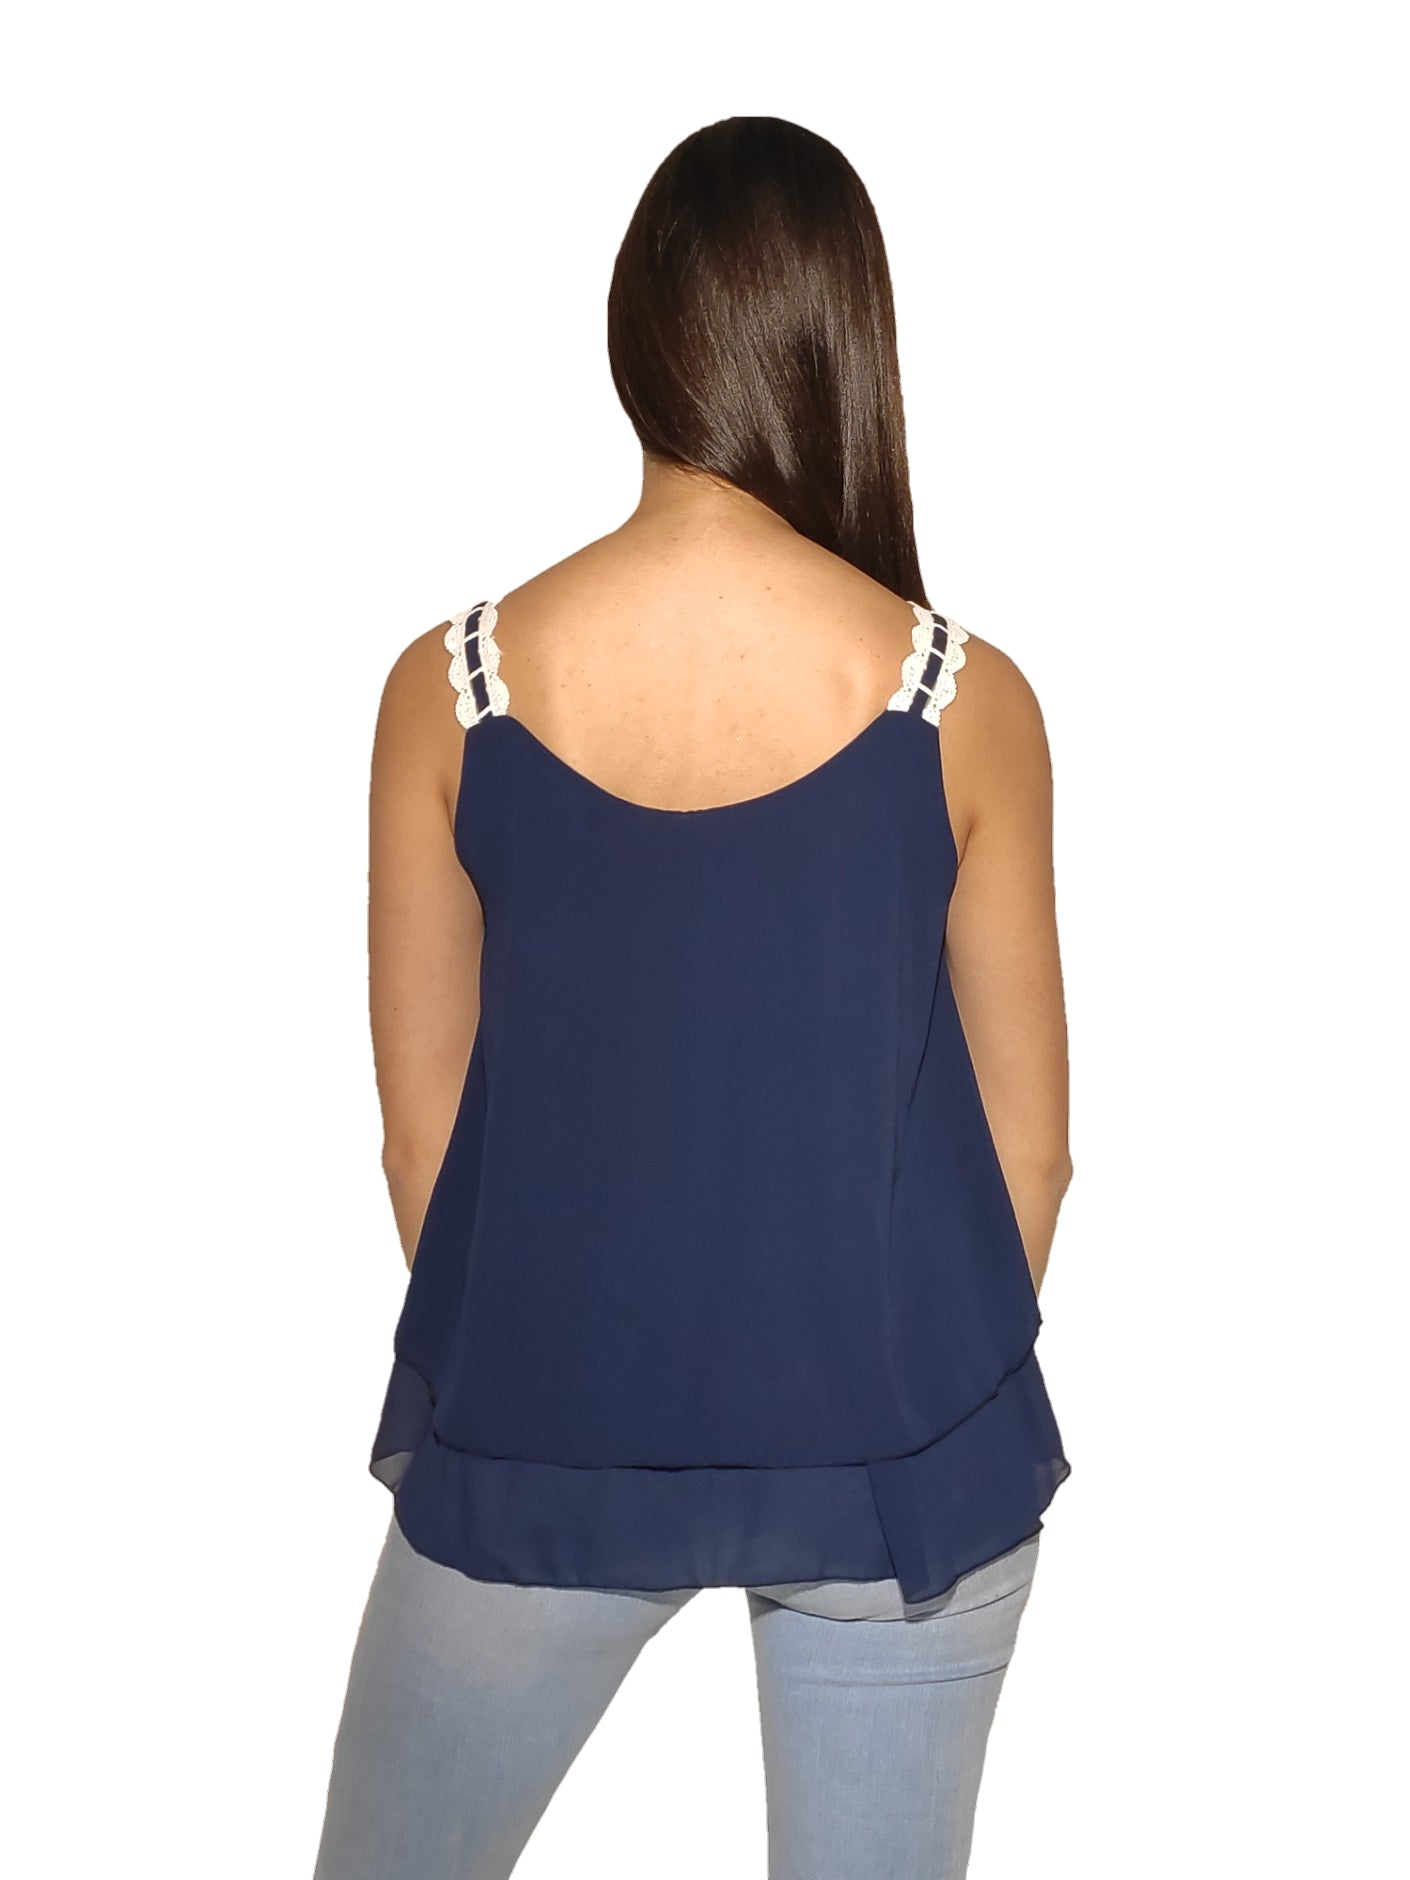 woman-wears-blue-blouse-with-white-laces-backside